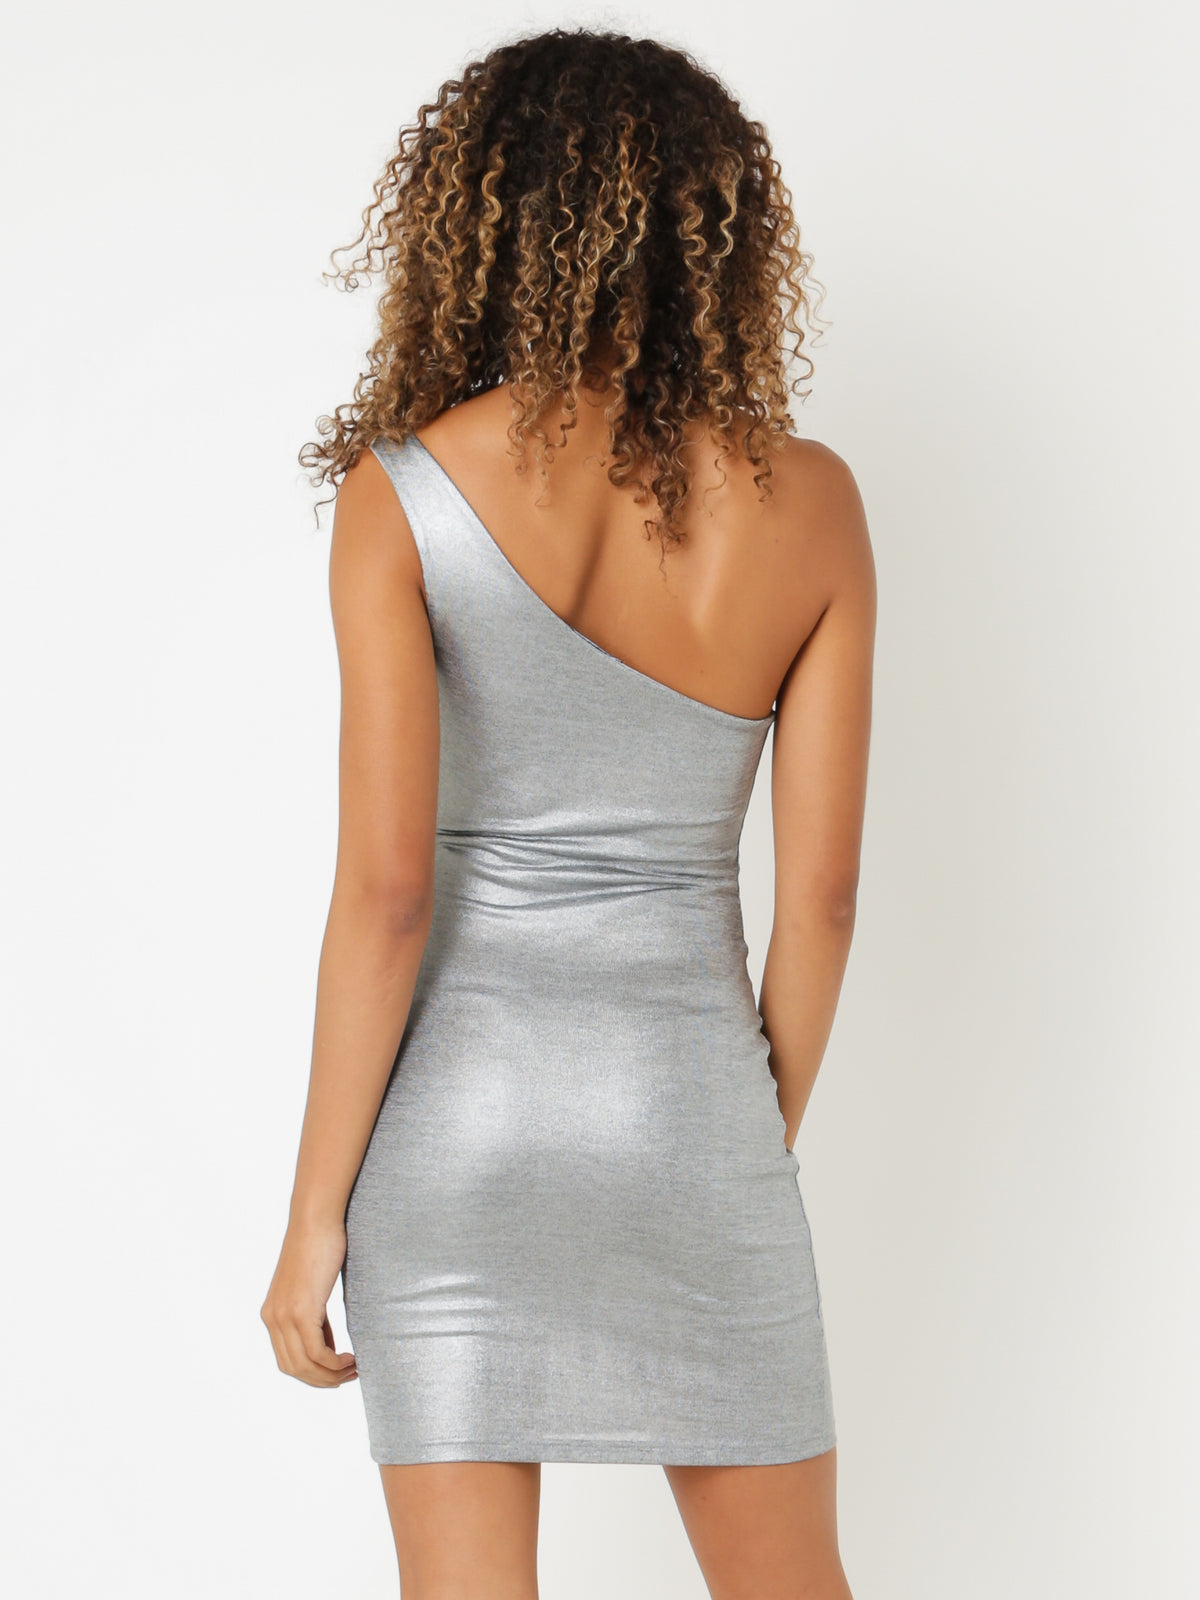 Shimmer One-Shoulder Mini Dress in Silver